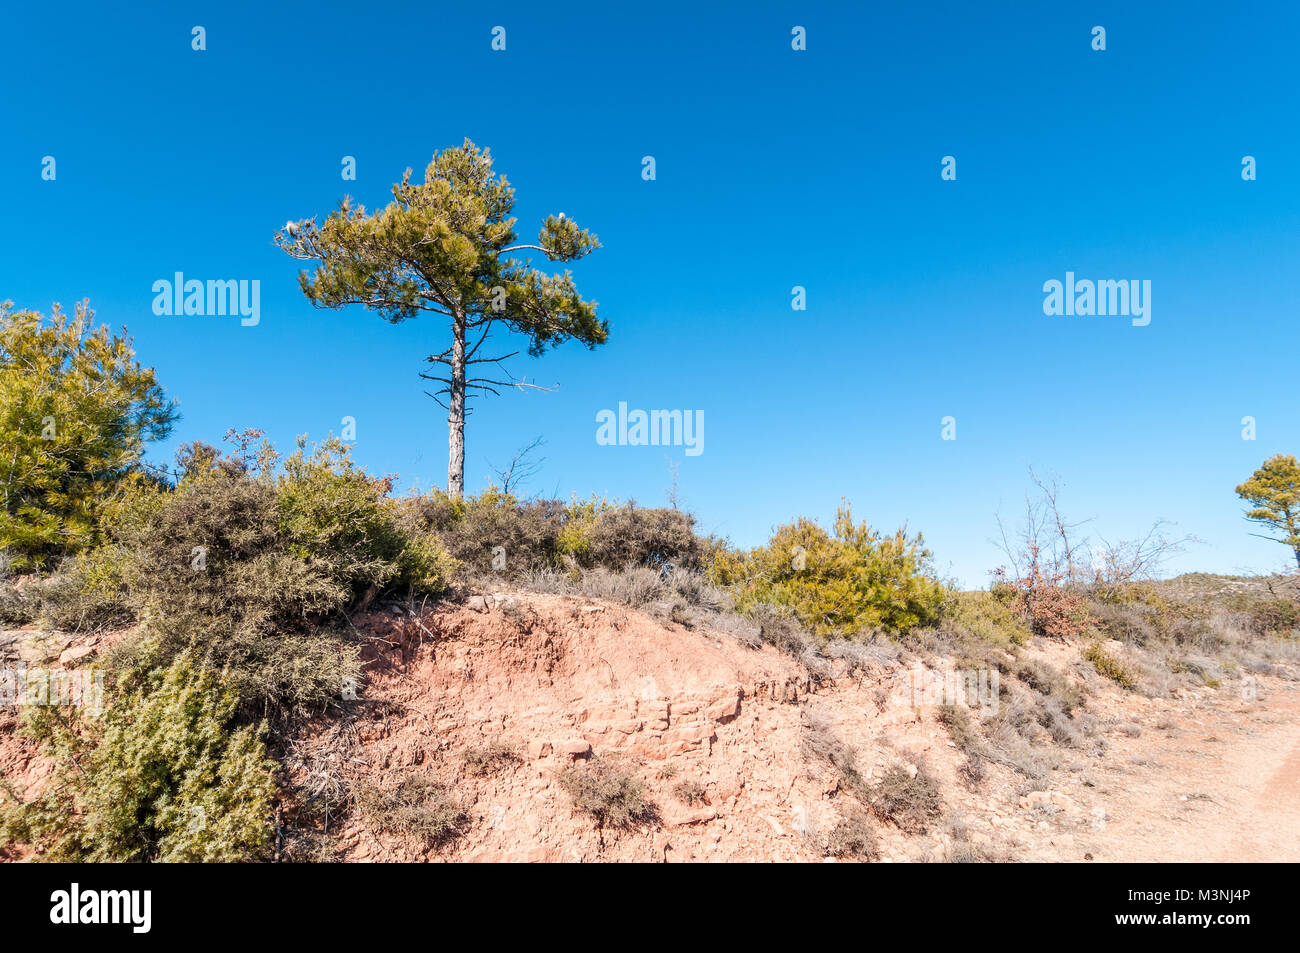 Aleppo pine, Pinus halepensis,  on a blue blackground, Catalonia, Spain - Stock Image